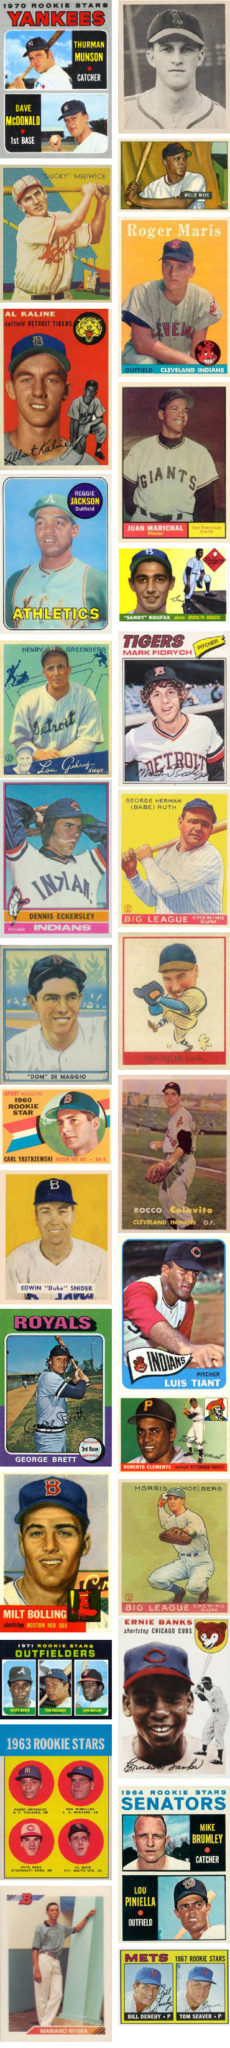 Buying Baseball Rookie Cards - Kenmore Collectibles